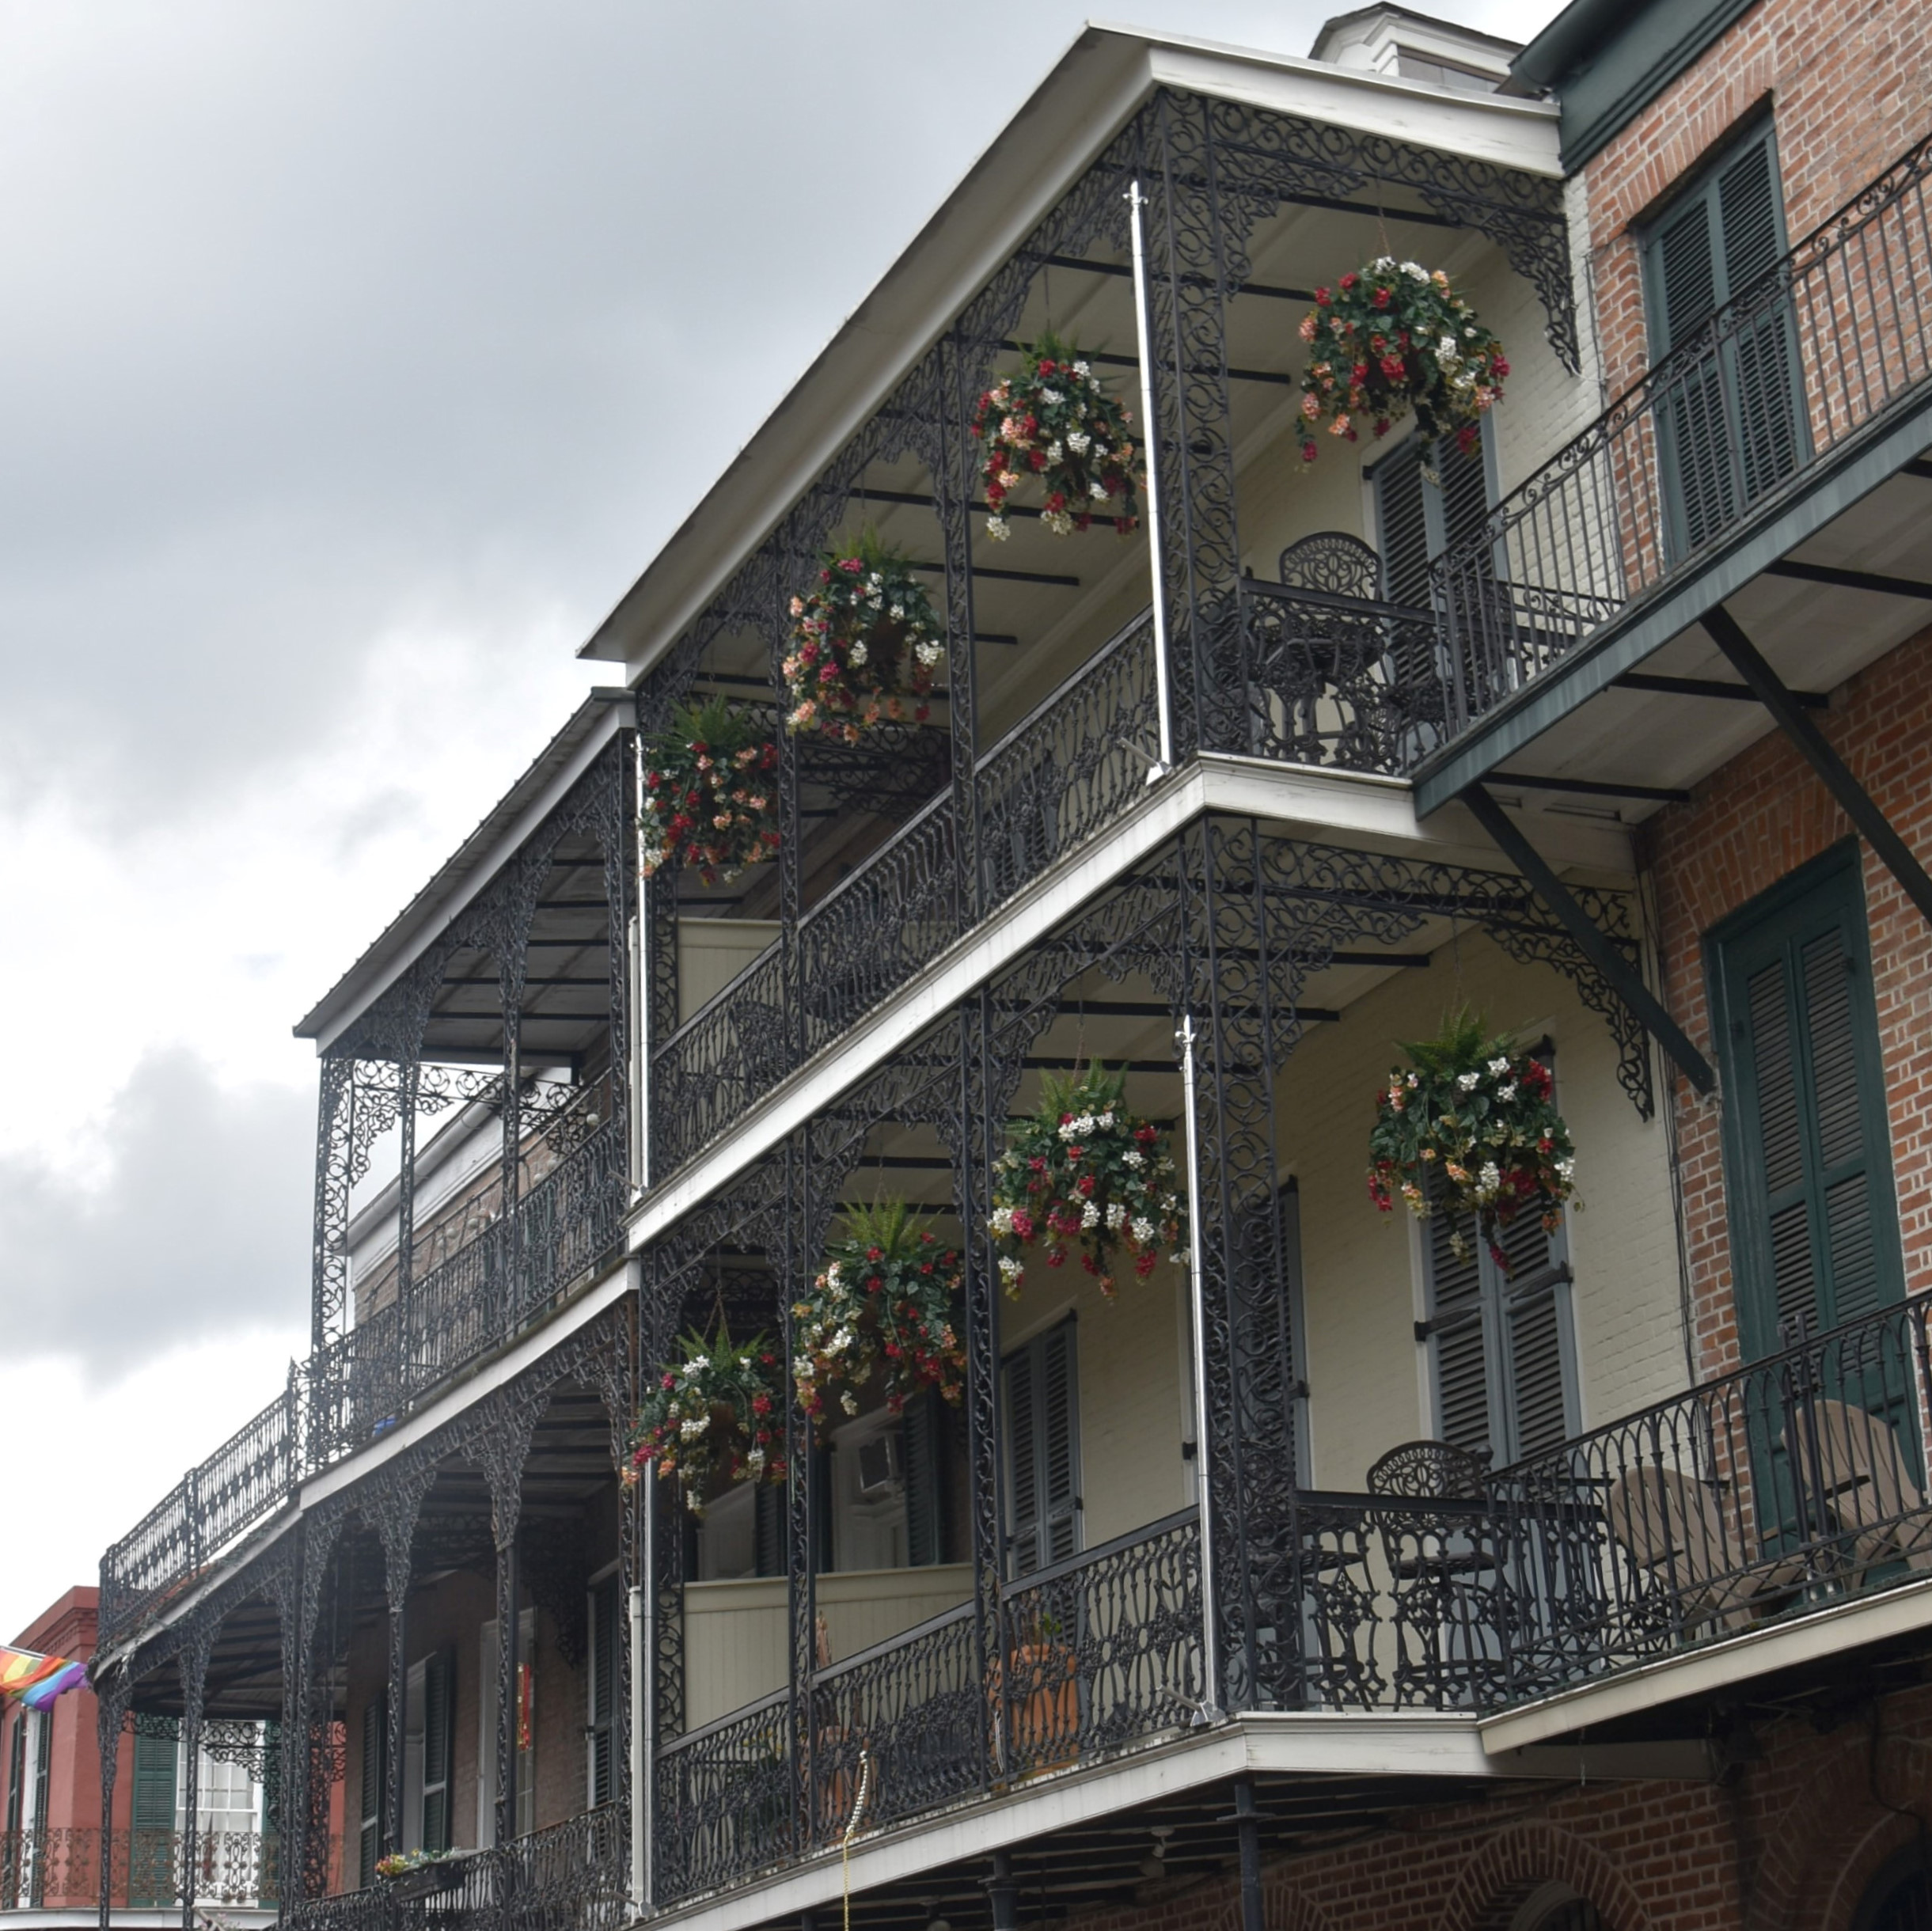 Traditional wrought iron balconies in the French Quarter of New Orleans.